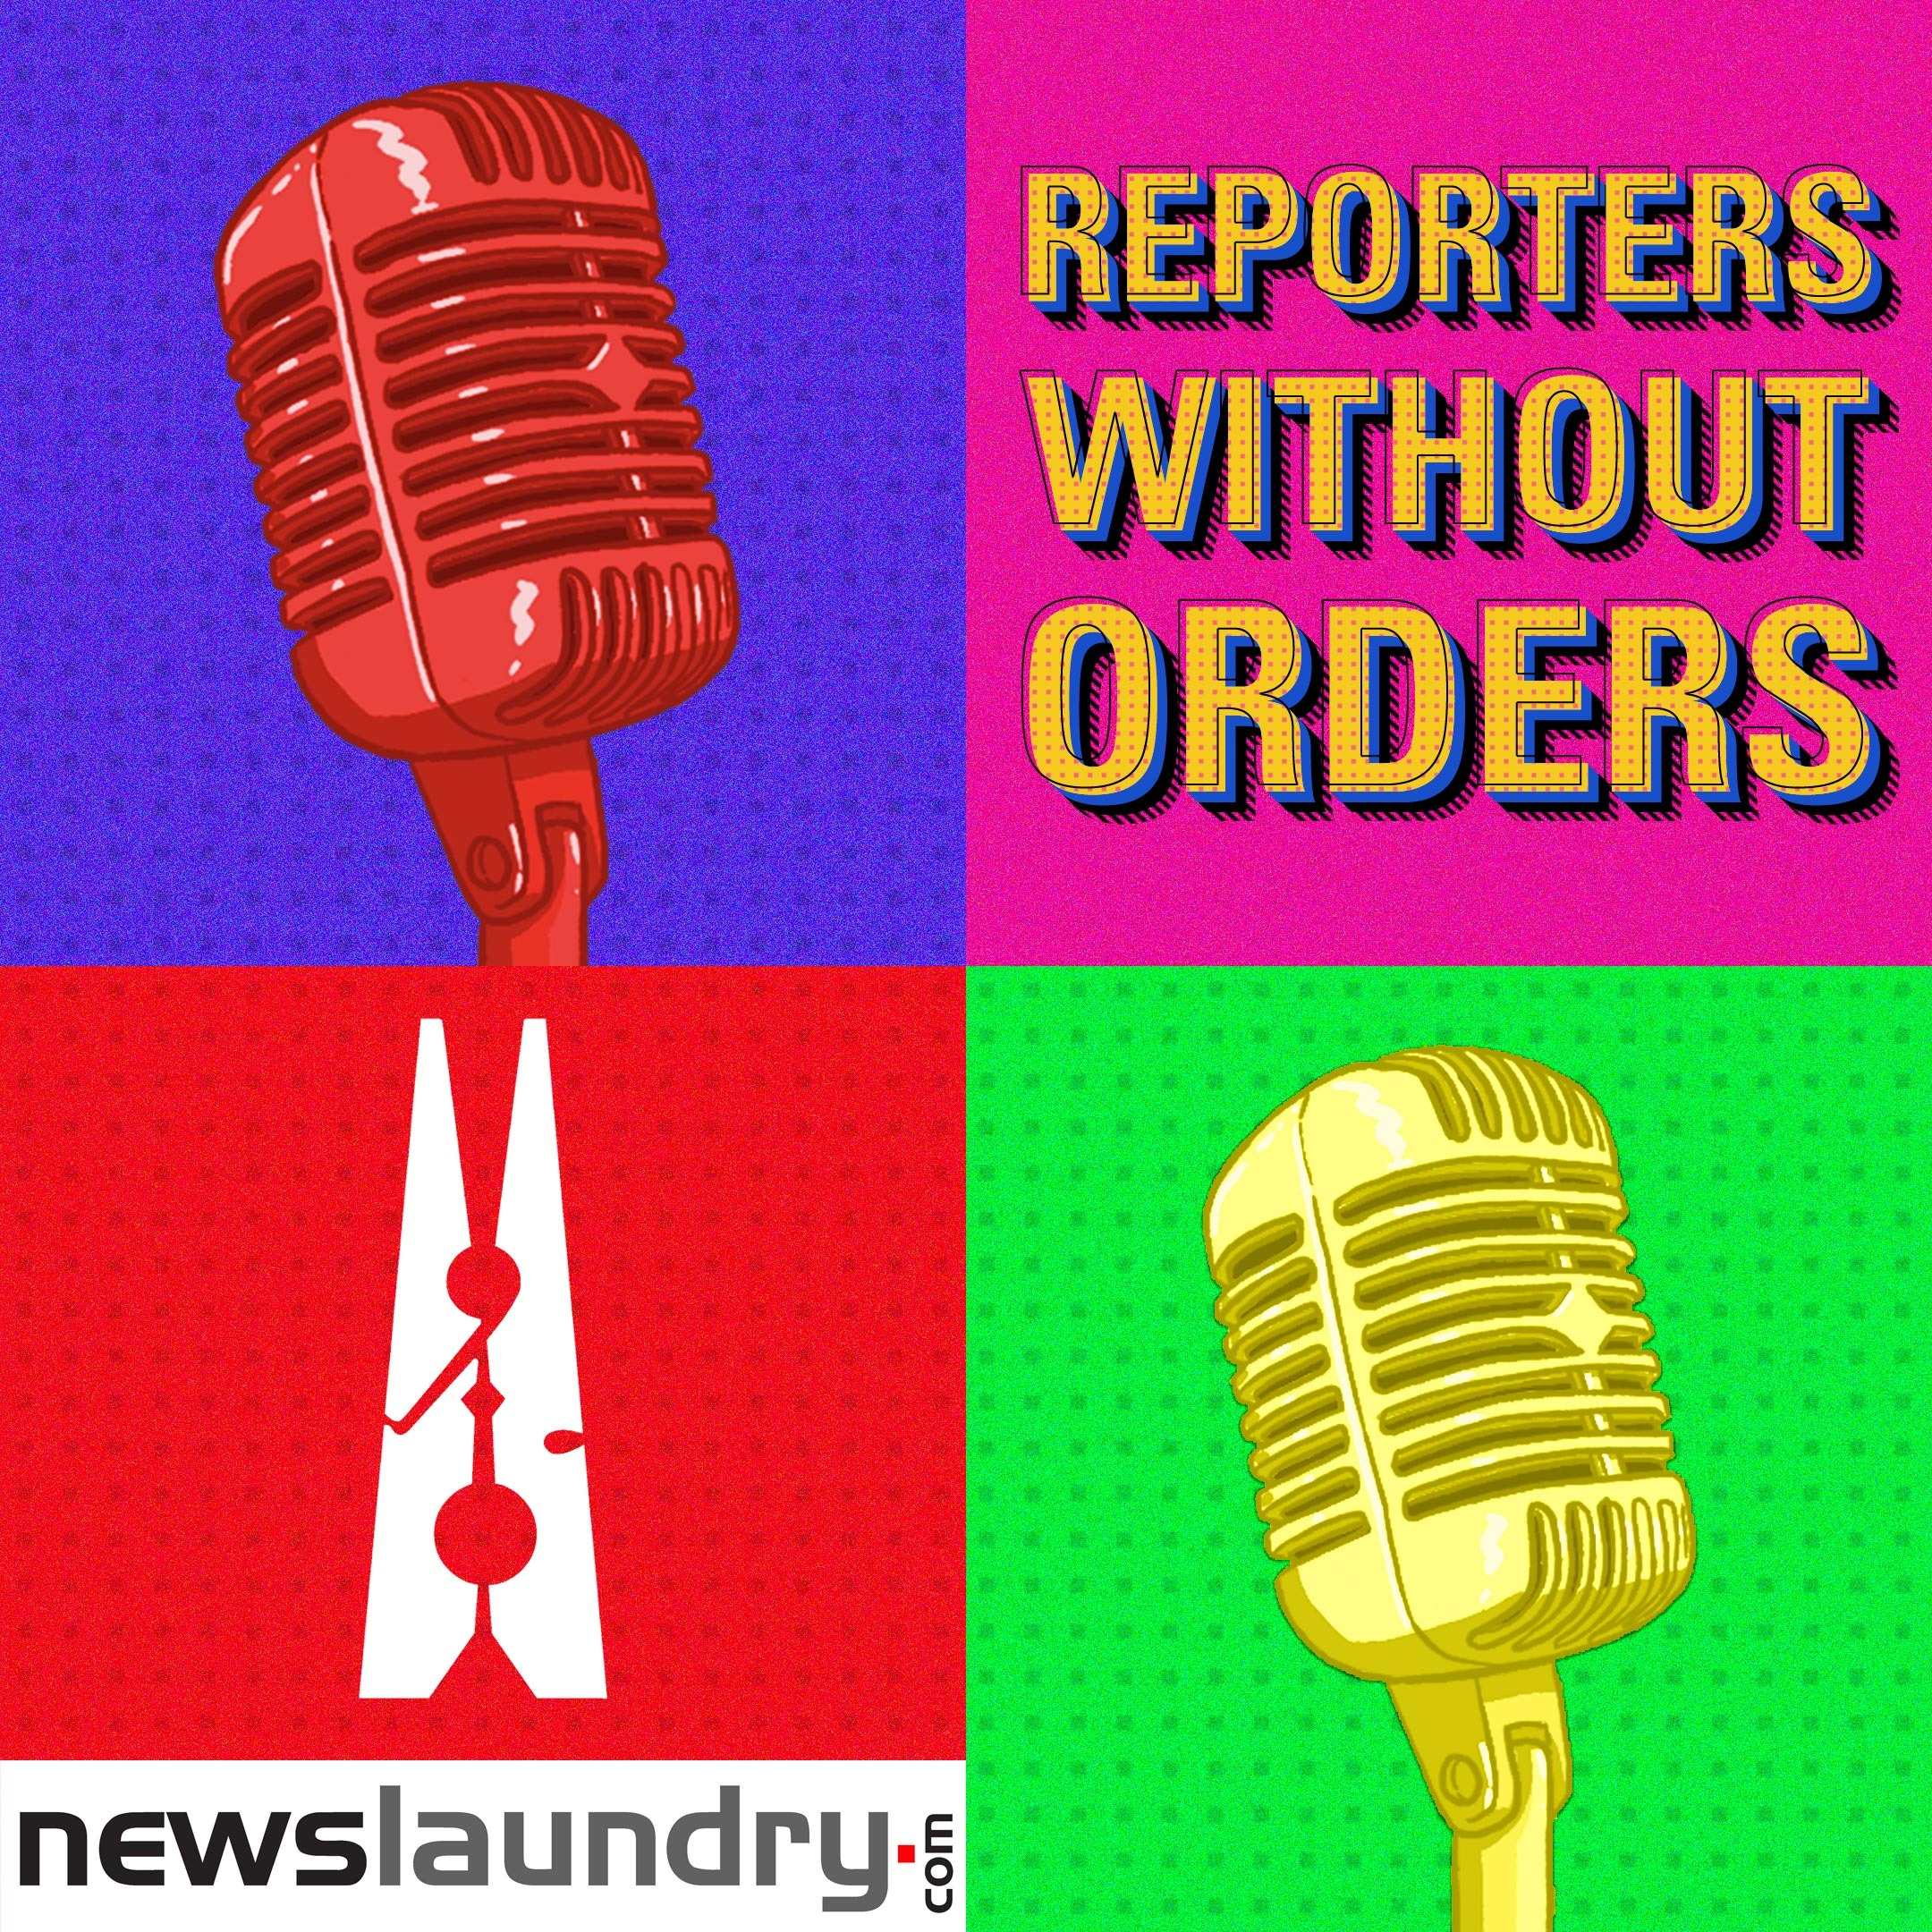 Reporters Without Orders Ep 134: The story of Laungi Manjhi and Panchjanya's obsession with love jihad